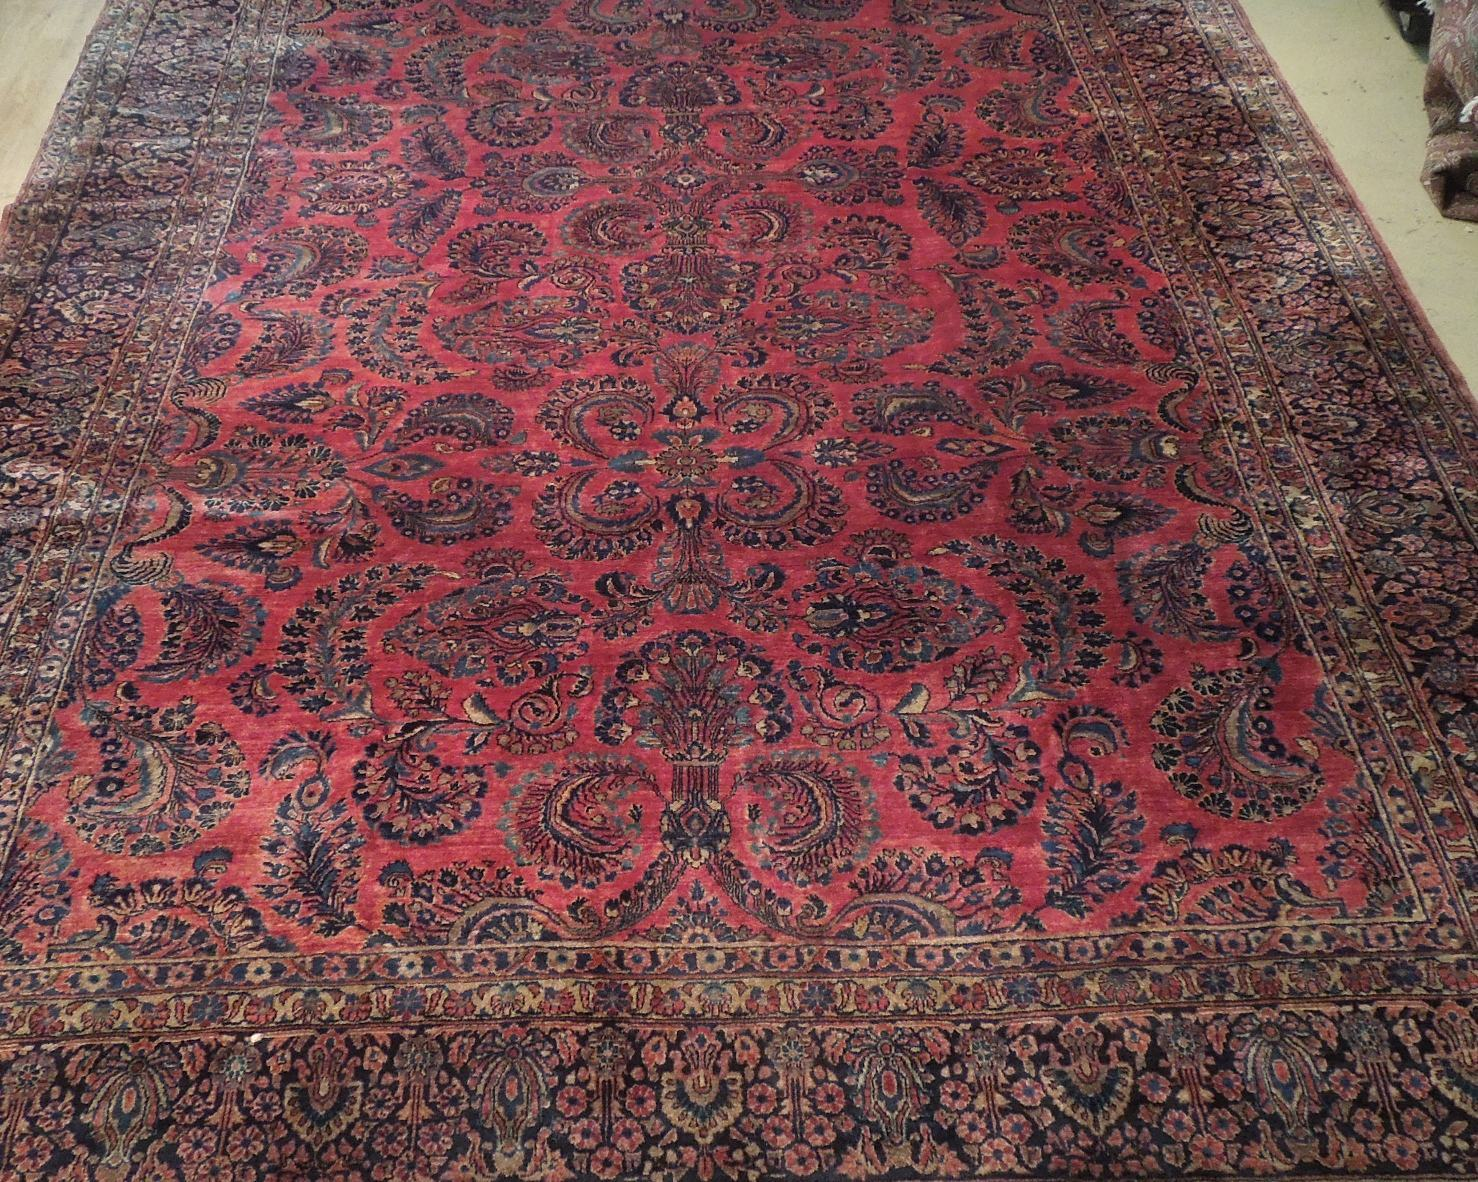 Red Sarouk Persian Wool Handmade Rug 11' x 18' Vivid Red Detailed Original Rug image 9